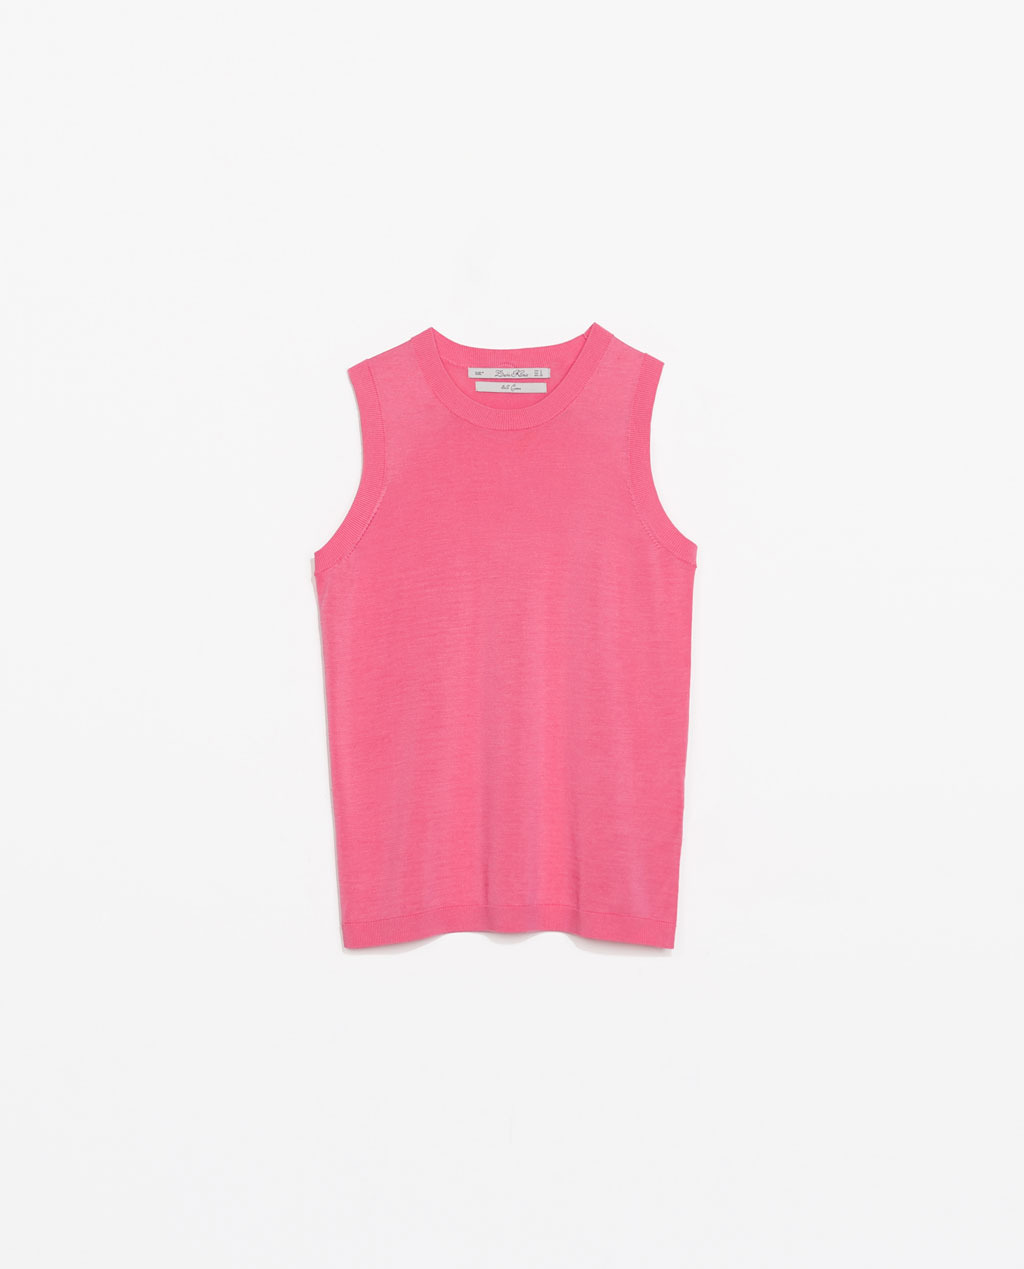 Silk Knit Tank Top - pattern: plain; sleeve style: sleeveless; style: vest top; occasions: casual; length: standard; fibres: silk - mix; fit: body skimming; neckline: crew; sleeve length: sleeveless; texture group: knits/crochet; pattern type: knitted - fine stitch; predominant colour: dusky pink; trends: sorbet shades; season: s/s 2014